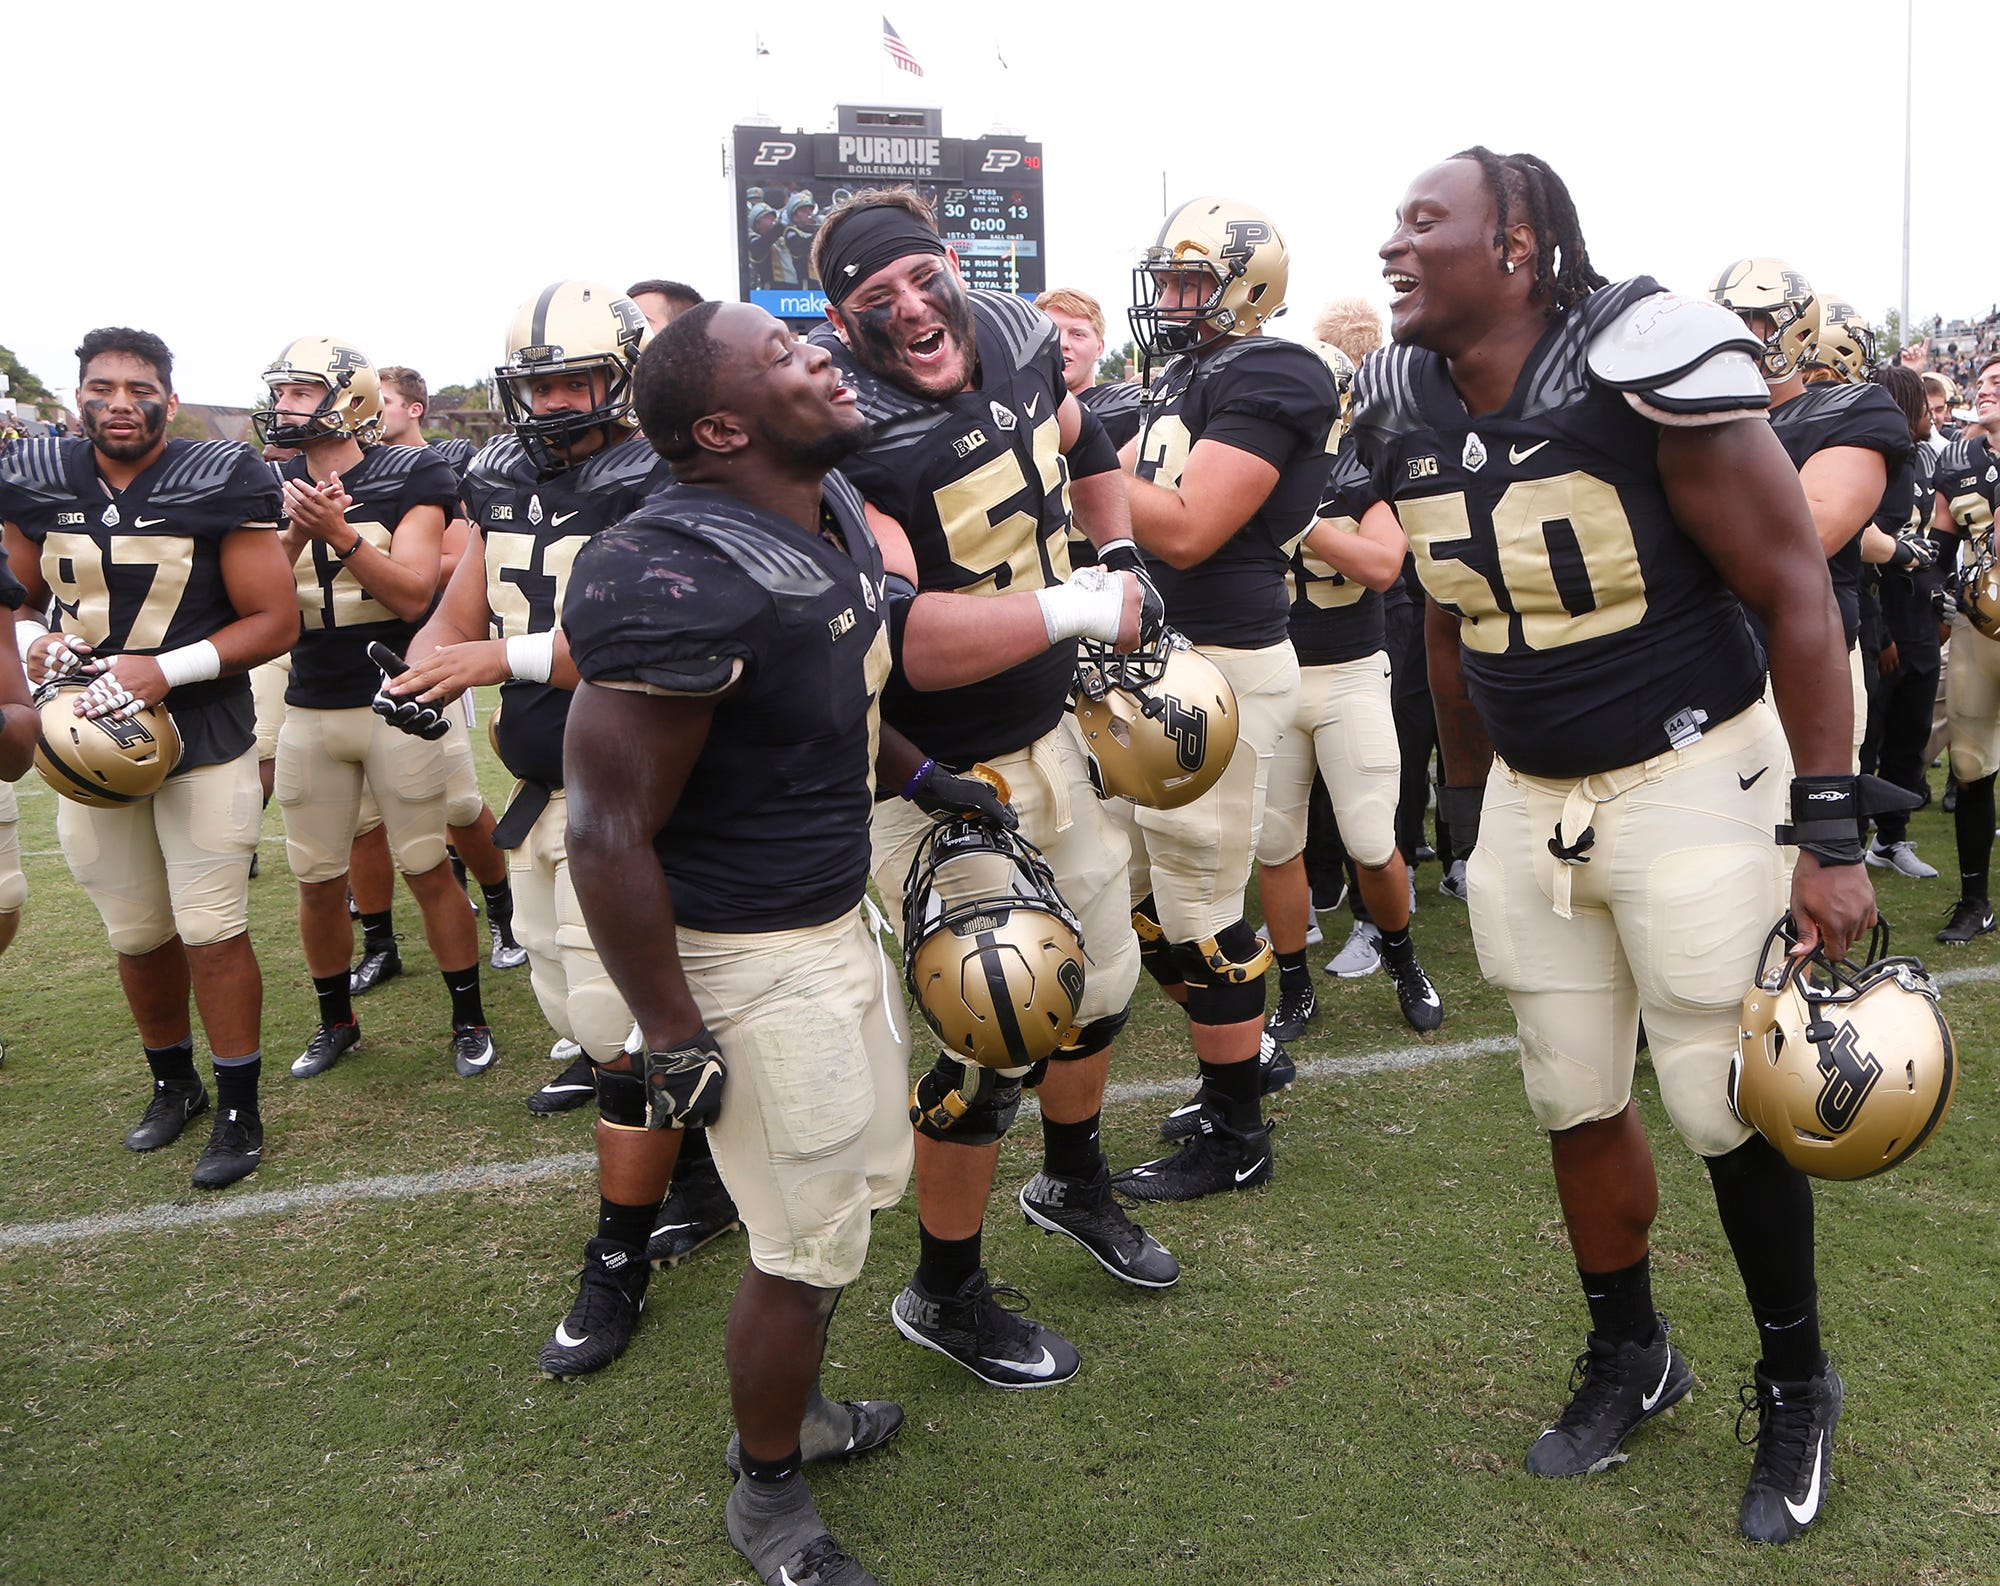 D. J. Knox, from left, Kirk Barron and Keiwan Jones celebrate after Purdue defeated Boston College 30-13 Saturday, September 22, 2018, in Ross-Ade Stadium.